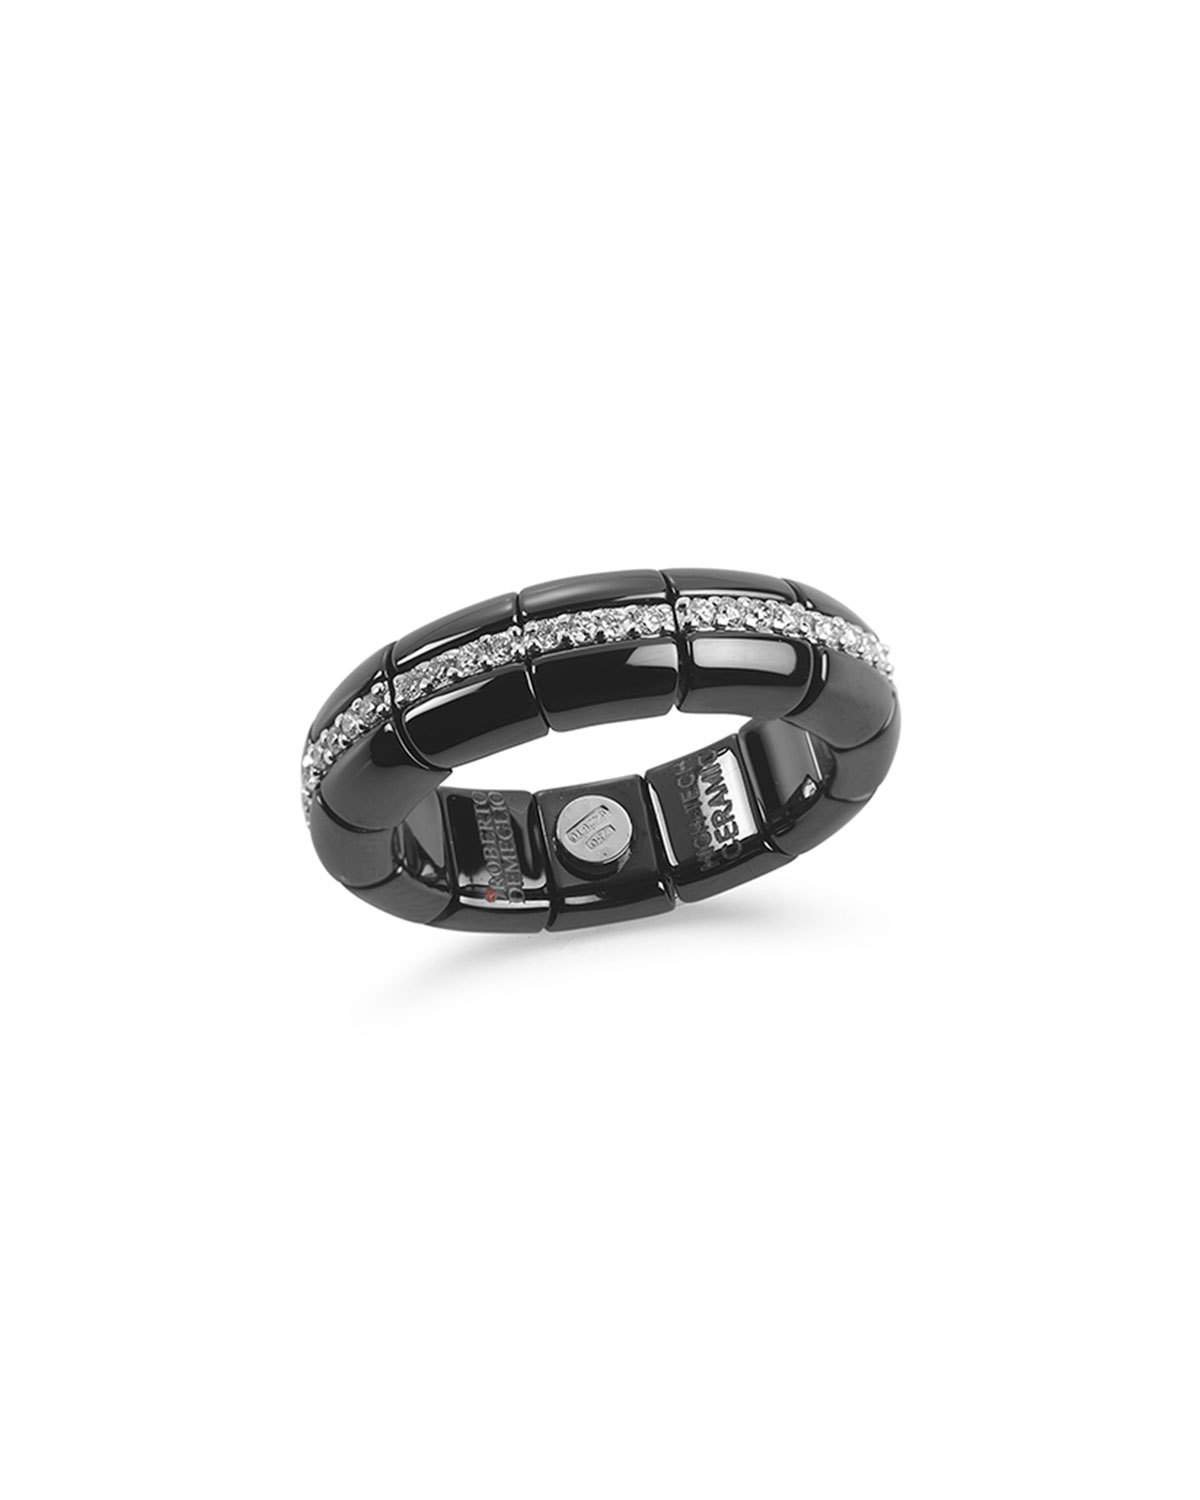 Roberto Demeglio Black Ceramic & 18K White Gold Eternity Ring